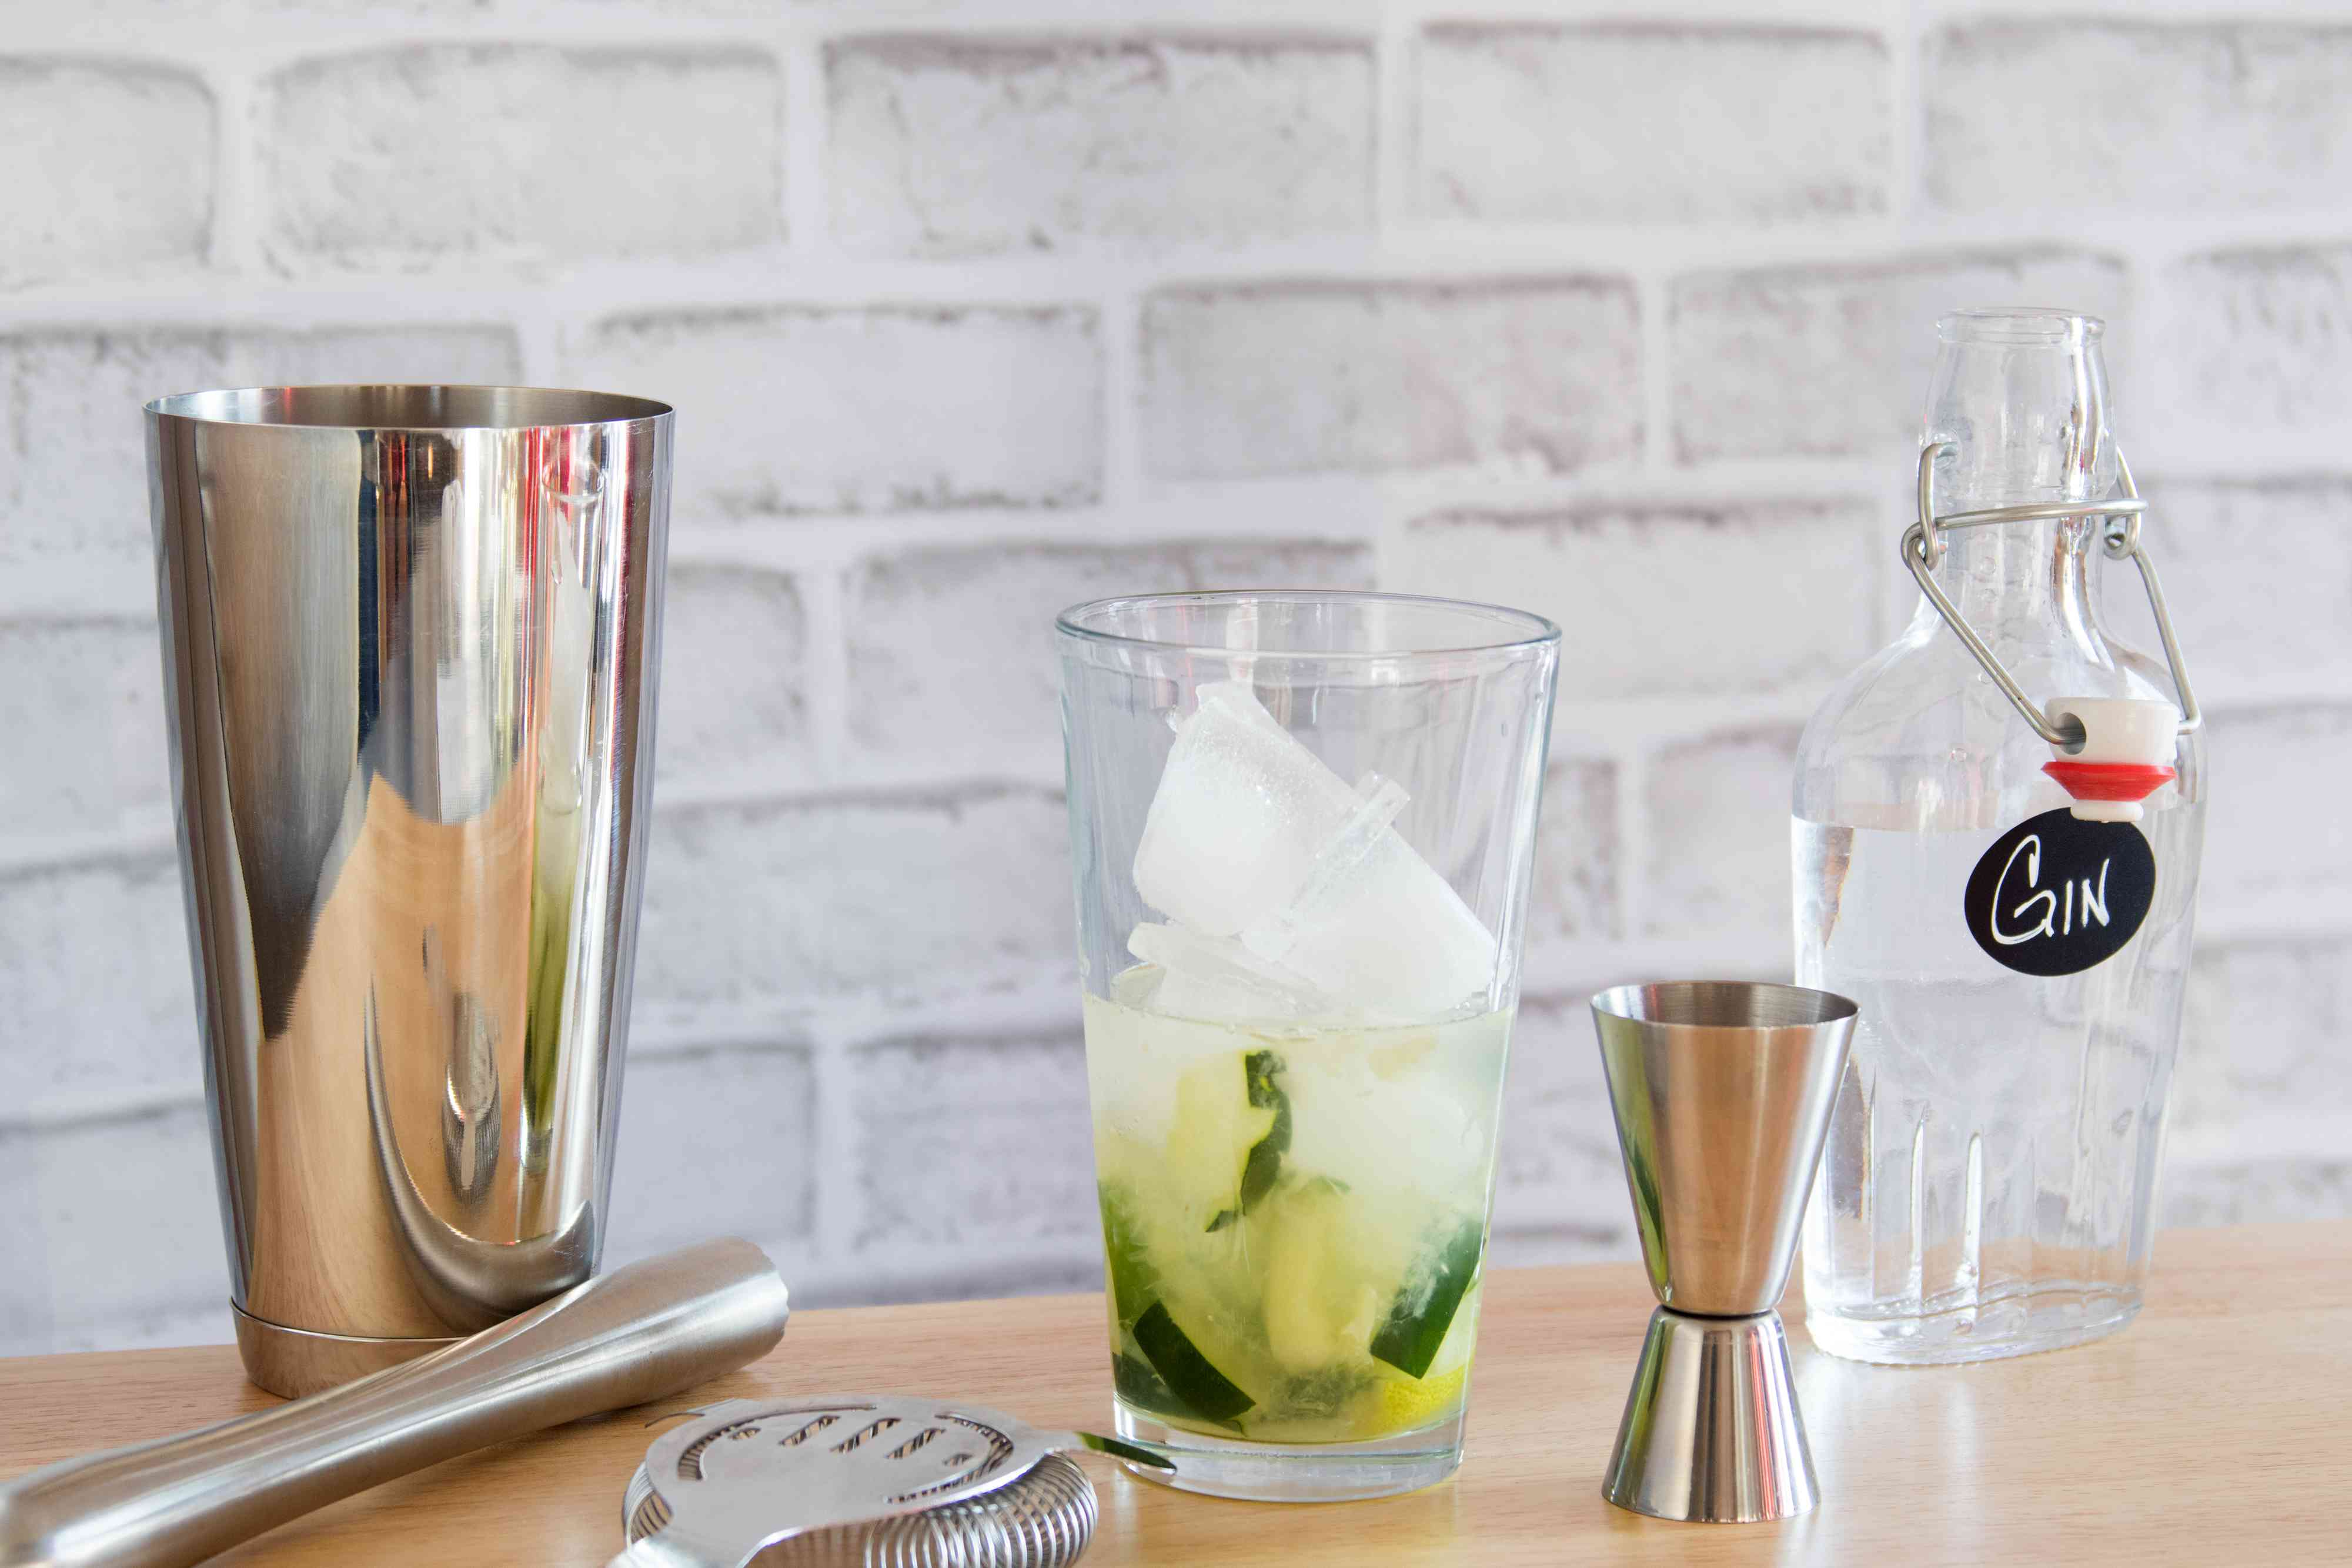 Mixing a Cucumber Collins Cocktail